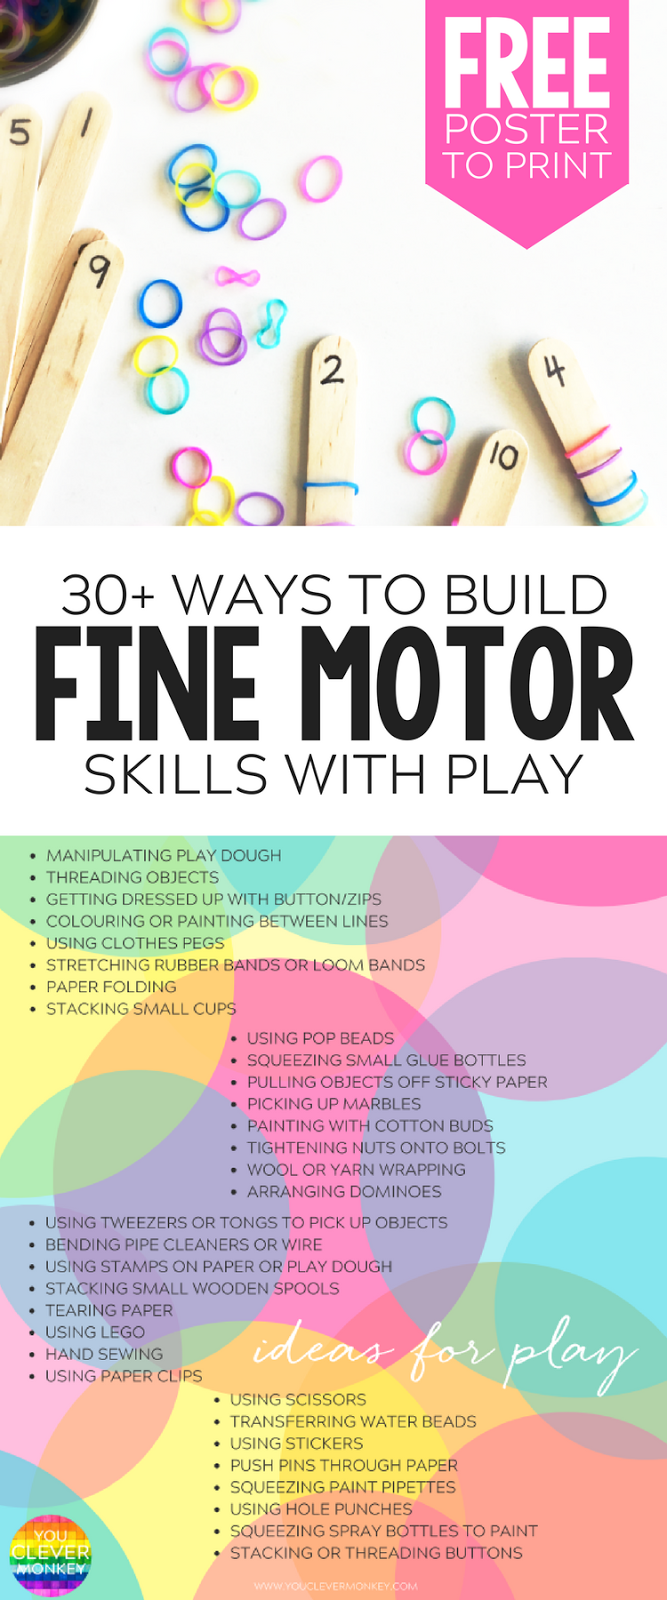 20+ Simple Hands-On Activities That Help Build Fine Motor Skills | you clever monkey